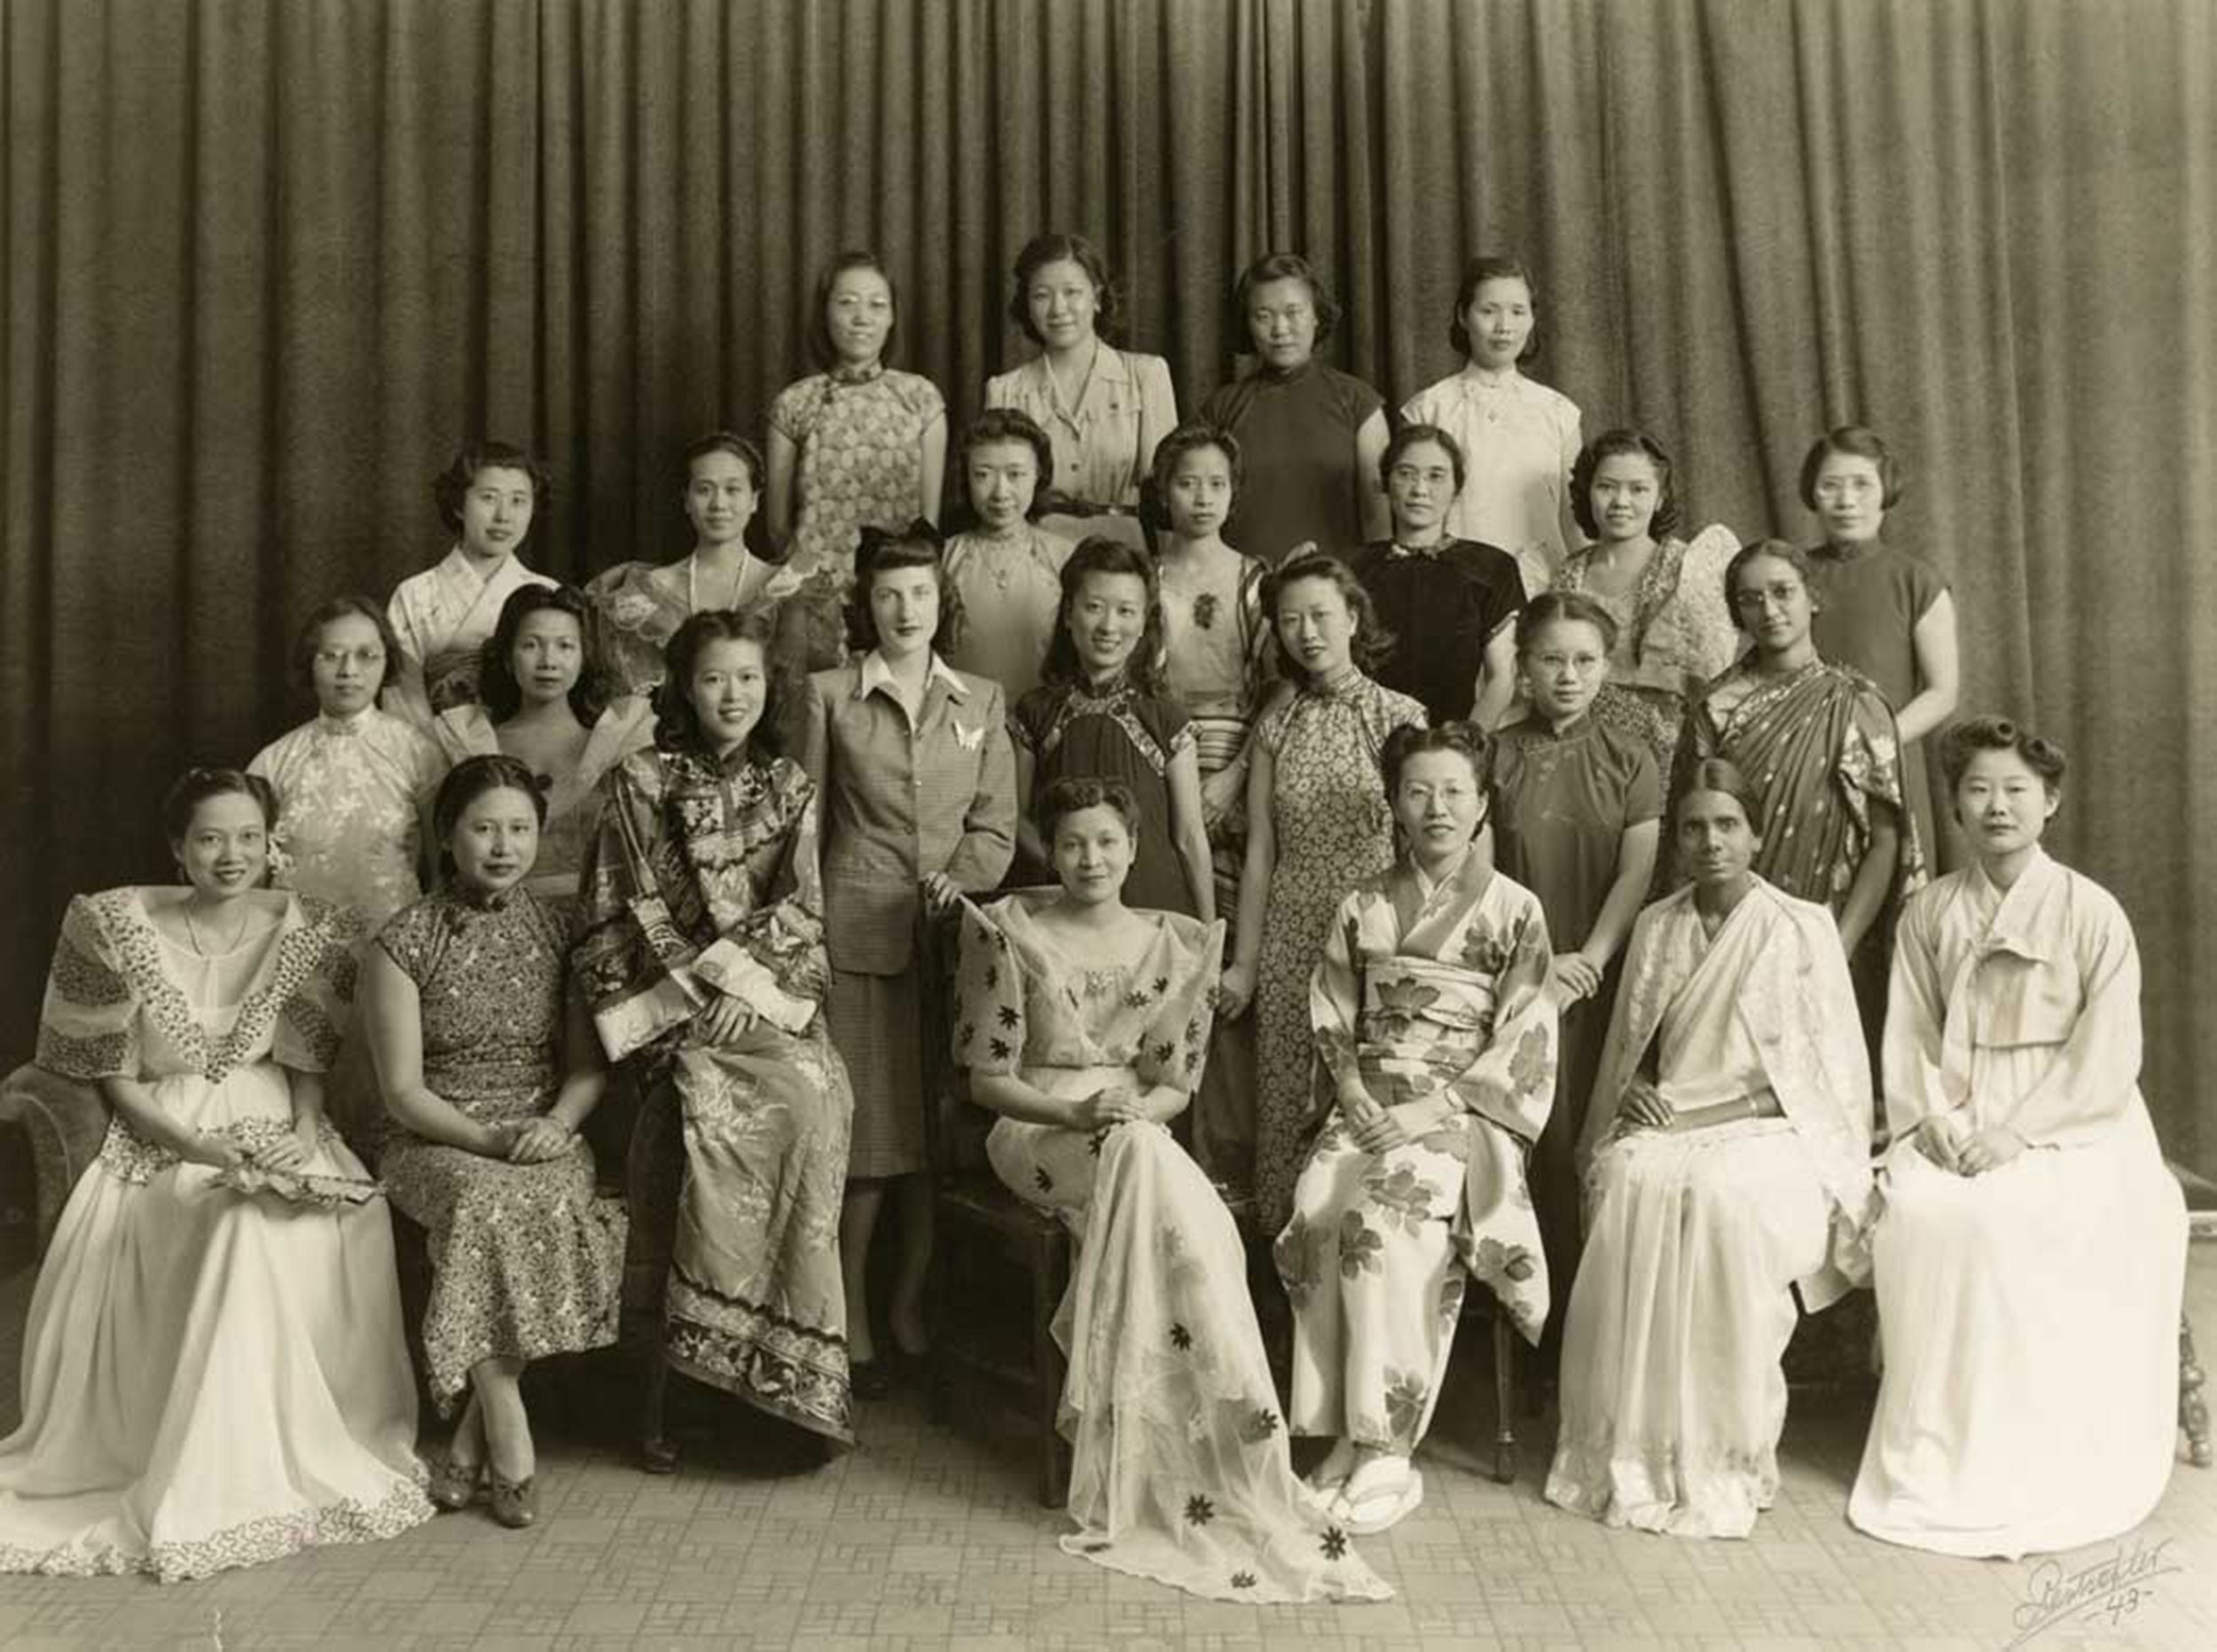 International students began attending U-M in the late 1840s. By the early 1900s, U-M was among the top three U.S. universities with Chinese student enrollment; the Barbour Scholarships have supported women students from Asian countries for nearly 100 years.